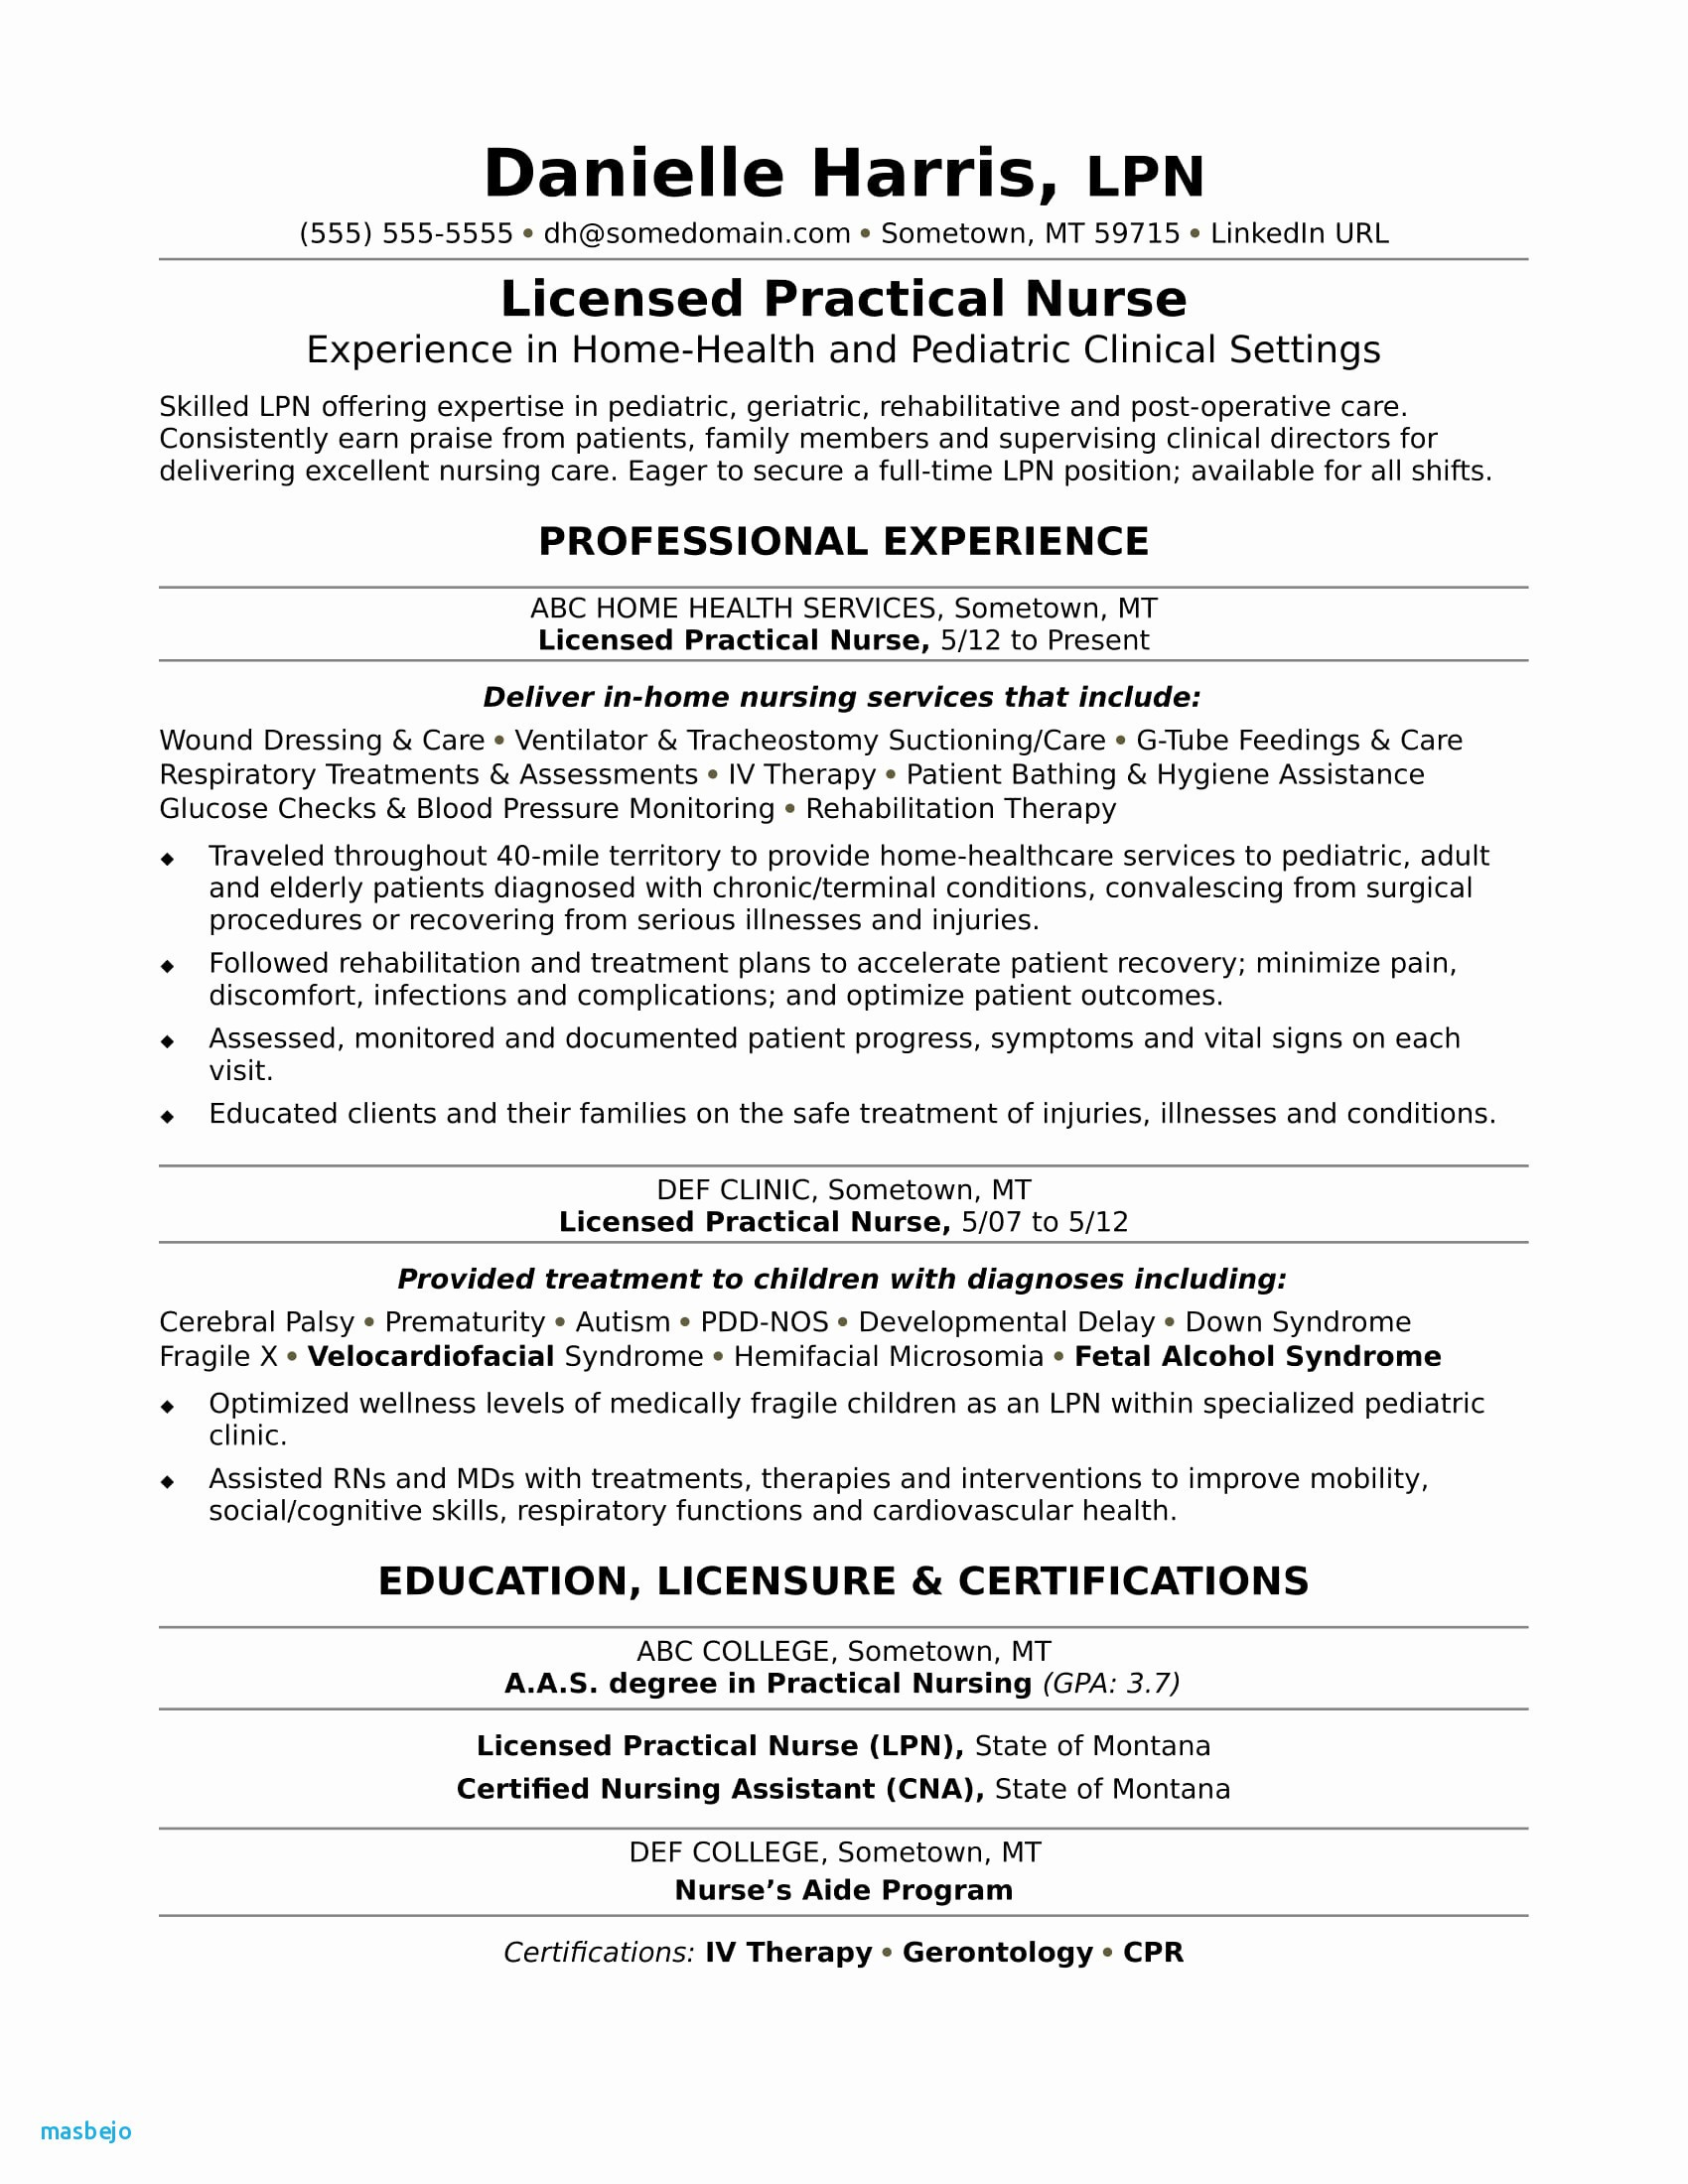 Sample Nursing Student Resume Clinical Experience - Sample Resume for A New Registered Nurse Resume Resume Examples